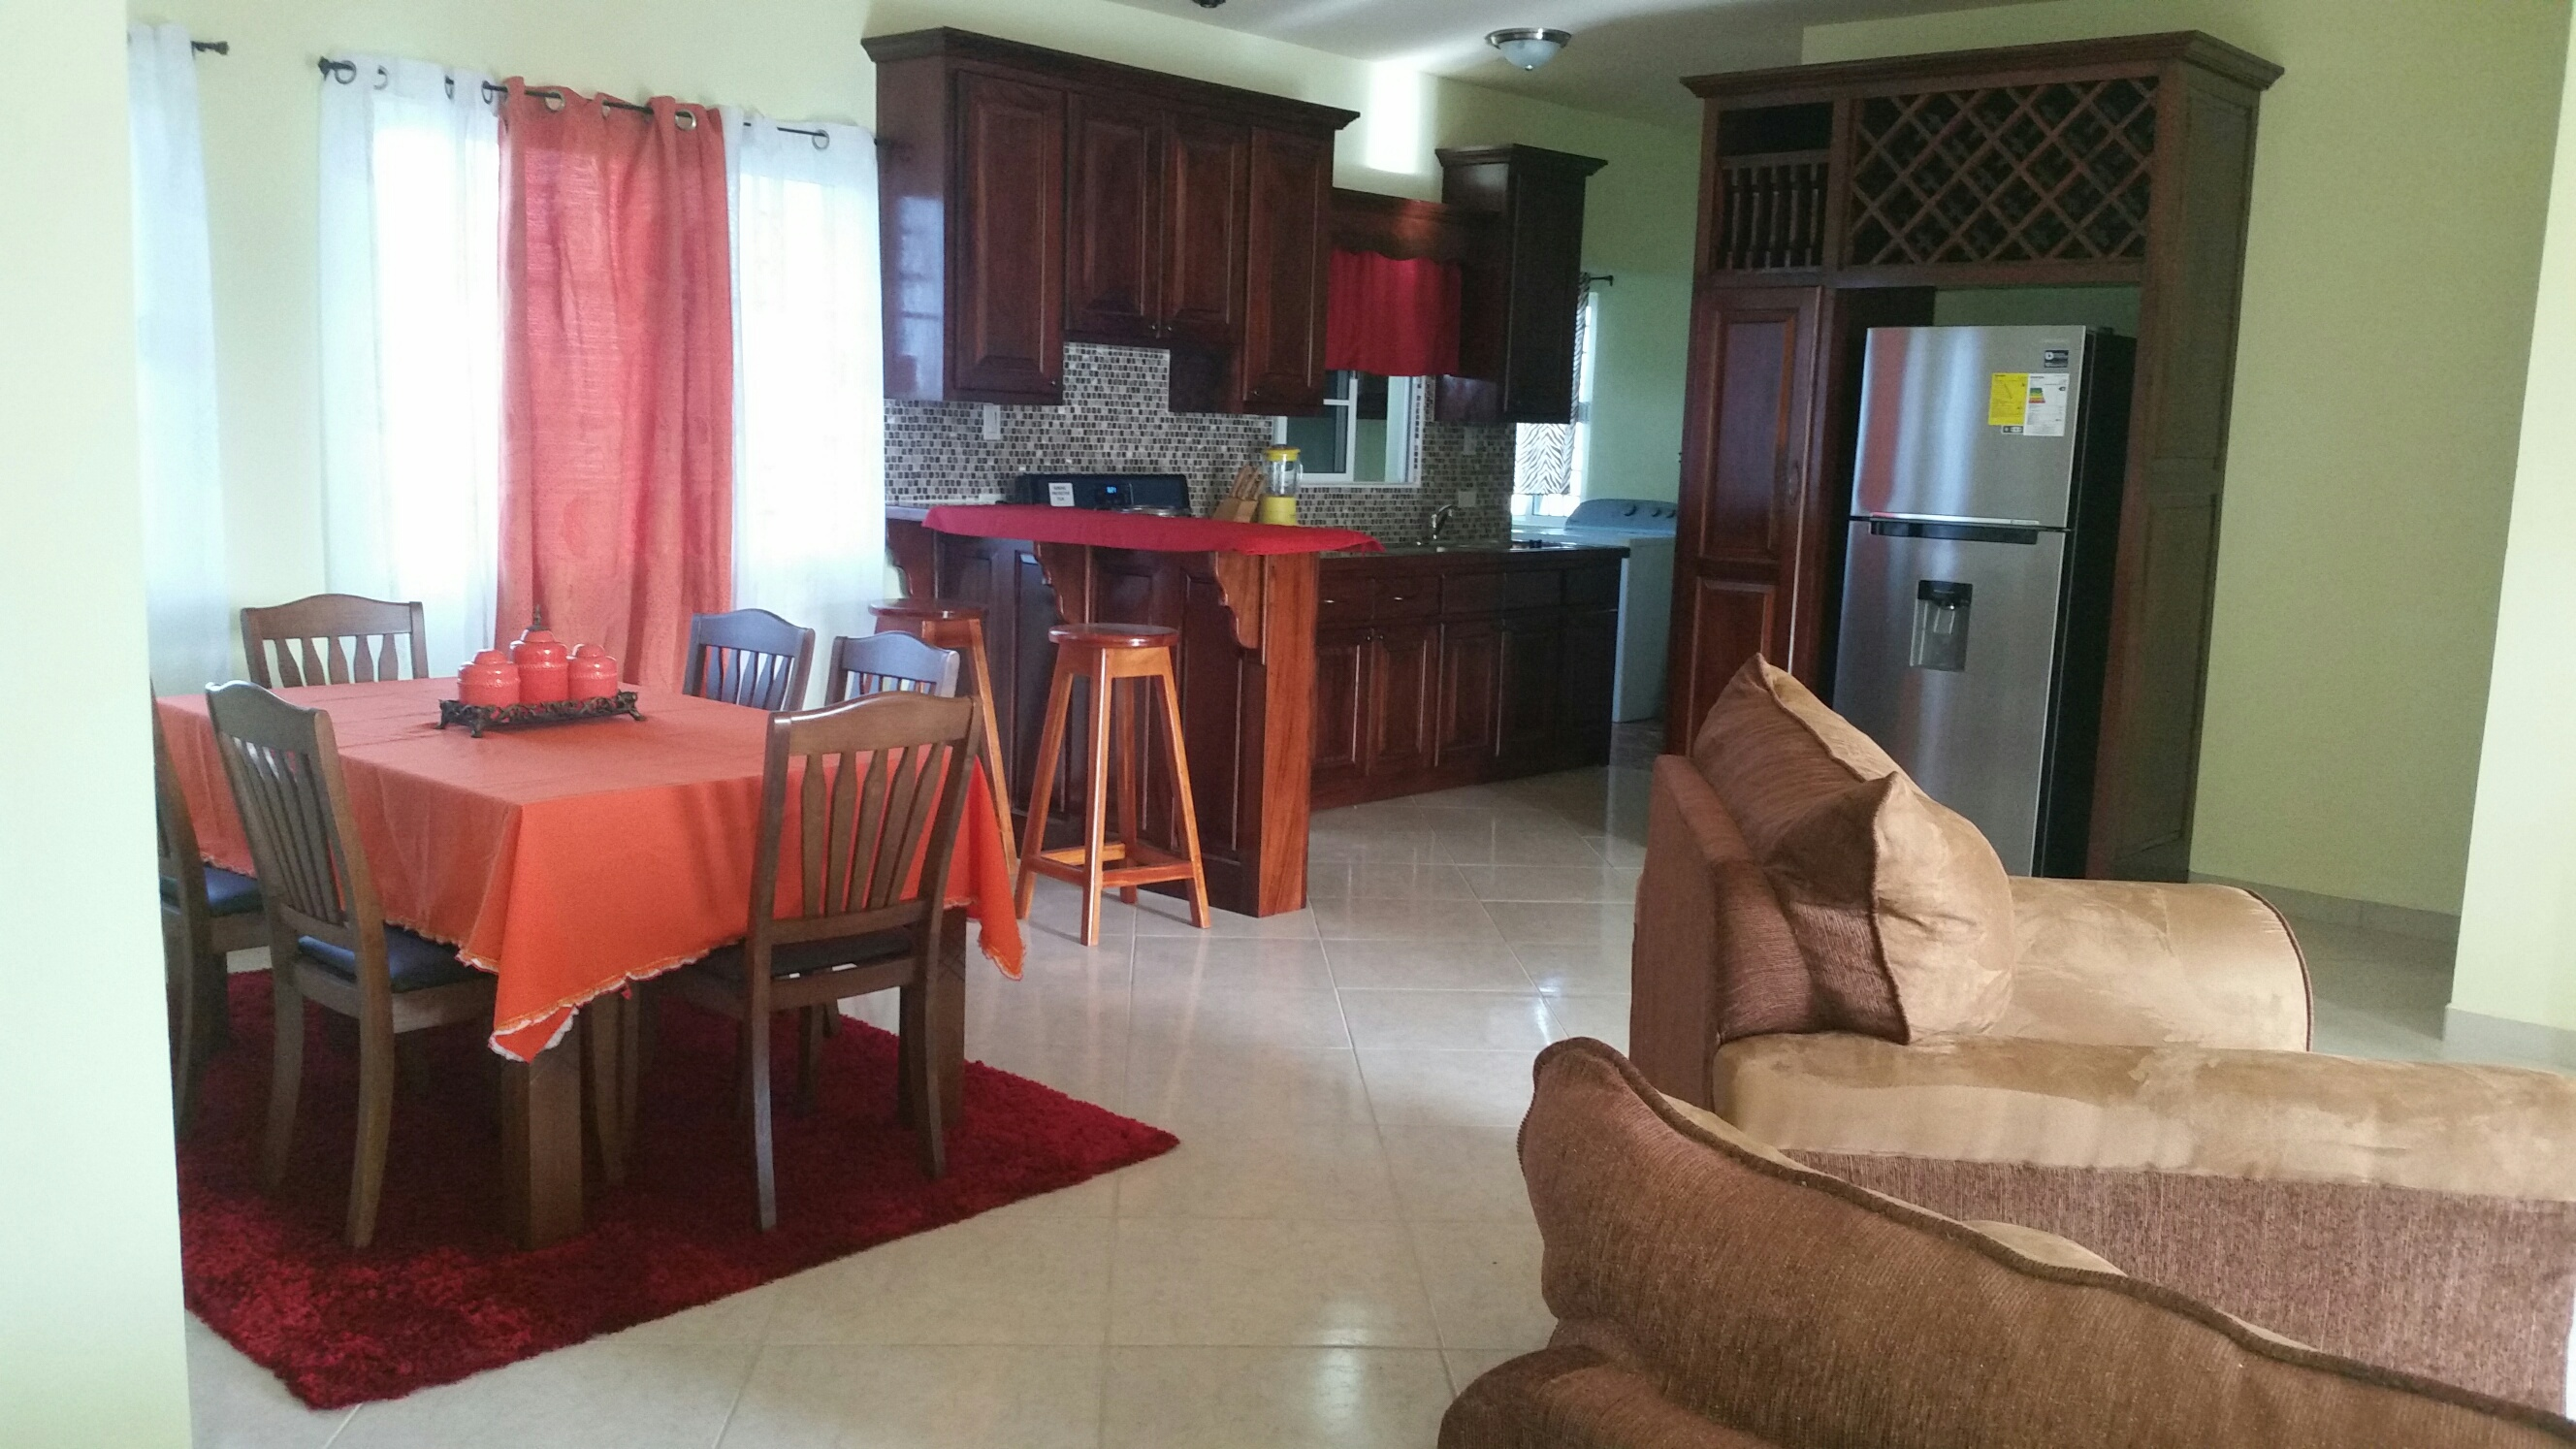 FURNISHED 3 BEDROOM HOME FOR RENT IN BELMOPAN CITY